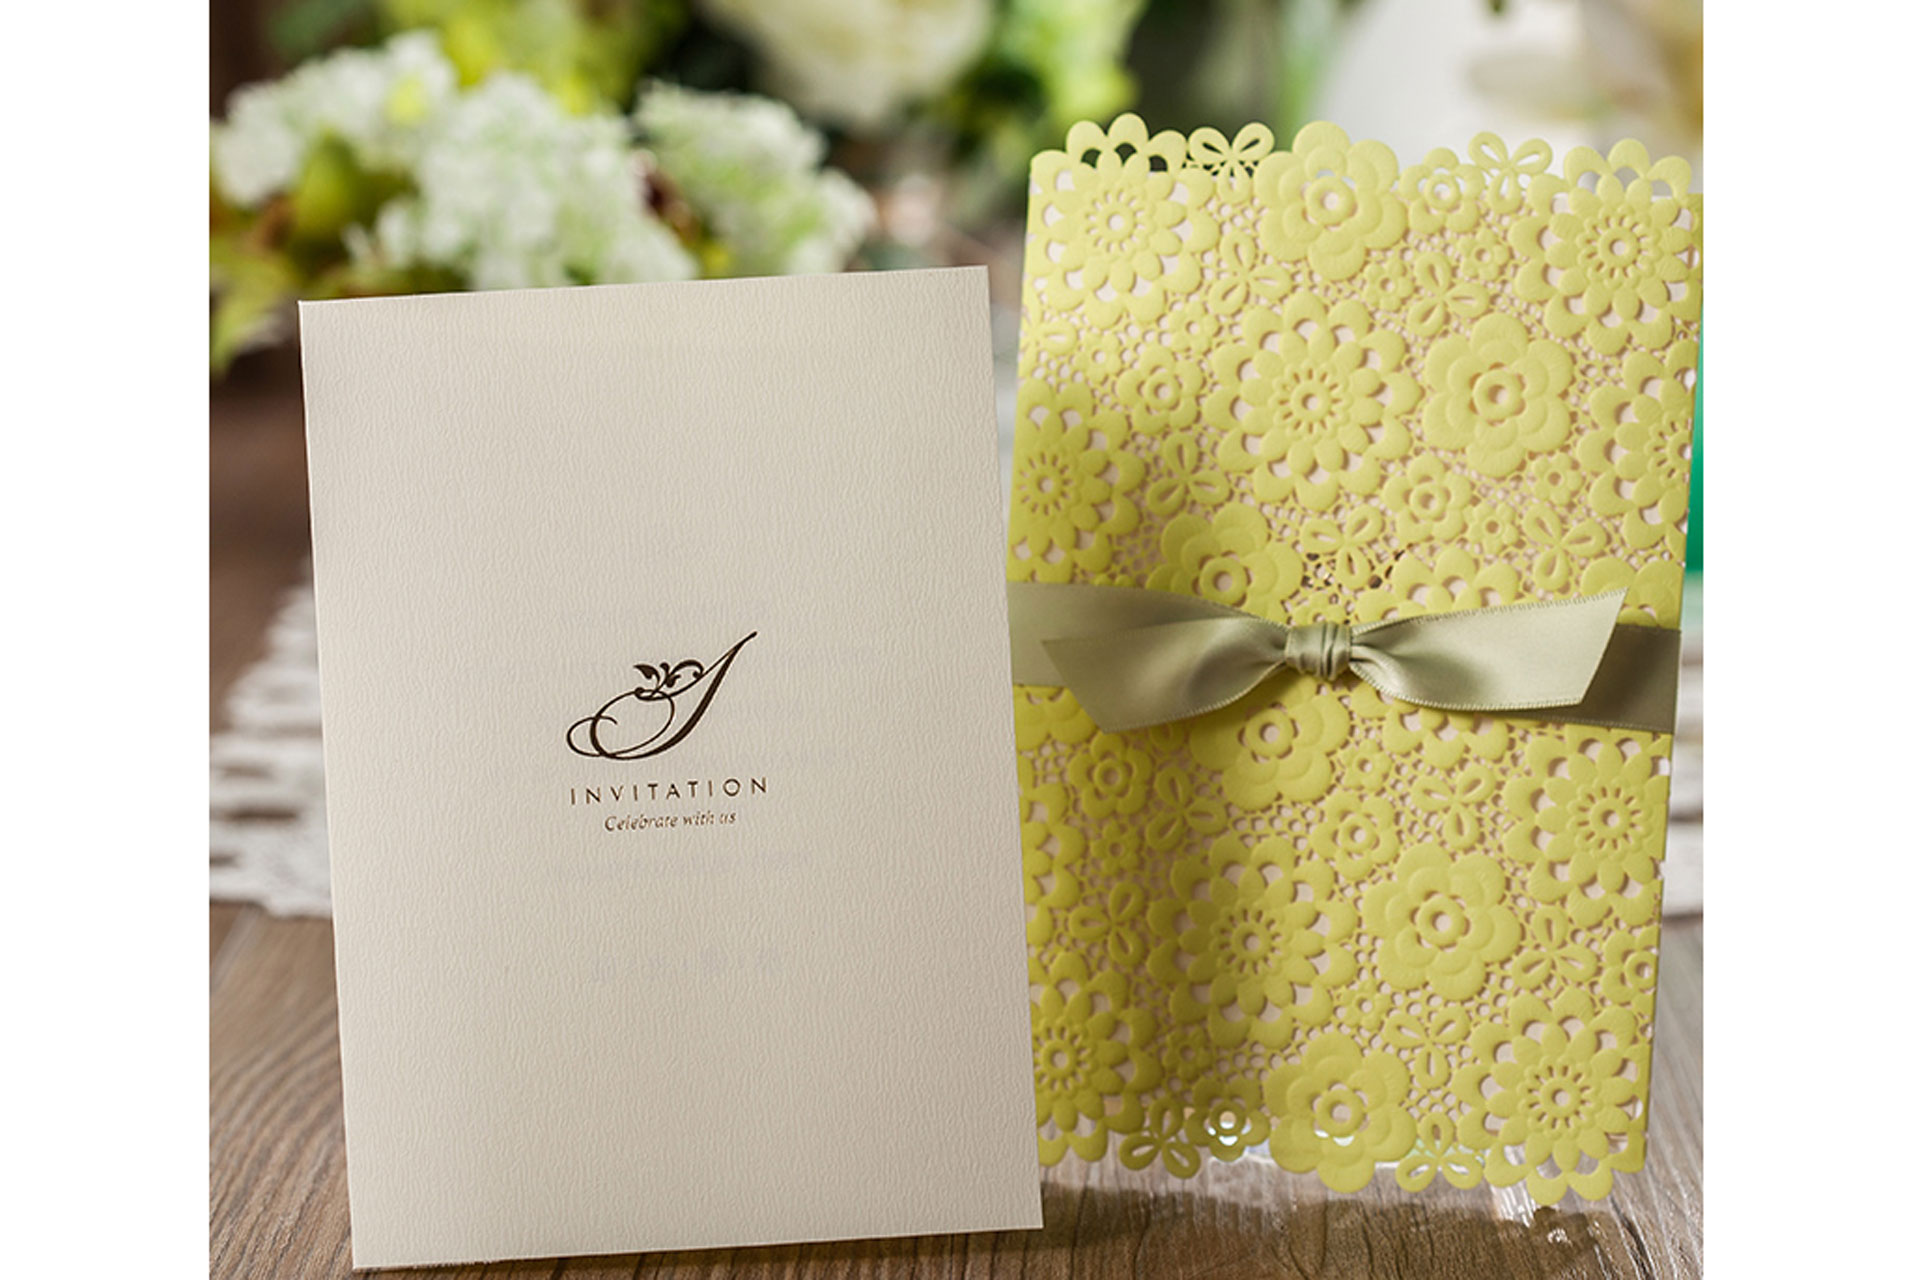 What you must know before making invitation cards for your wedding